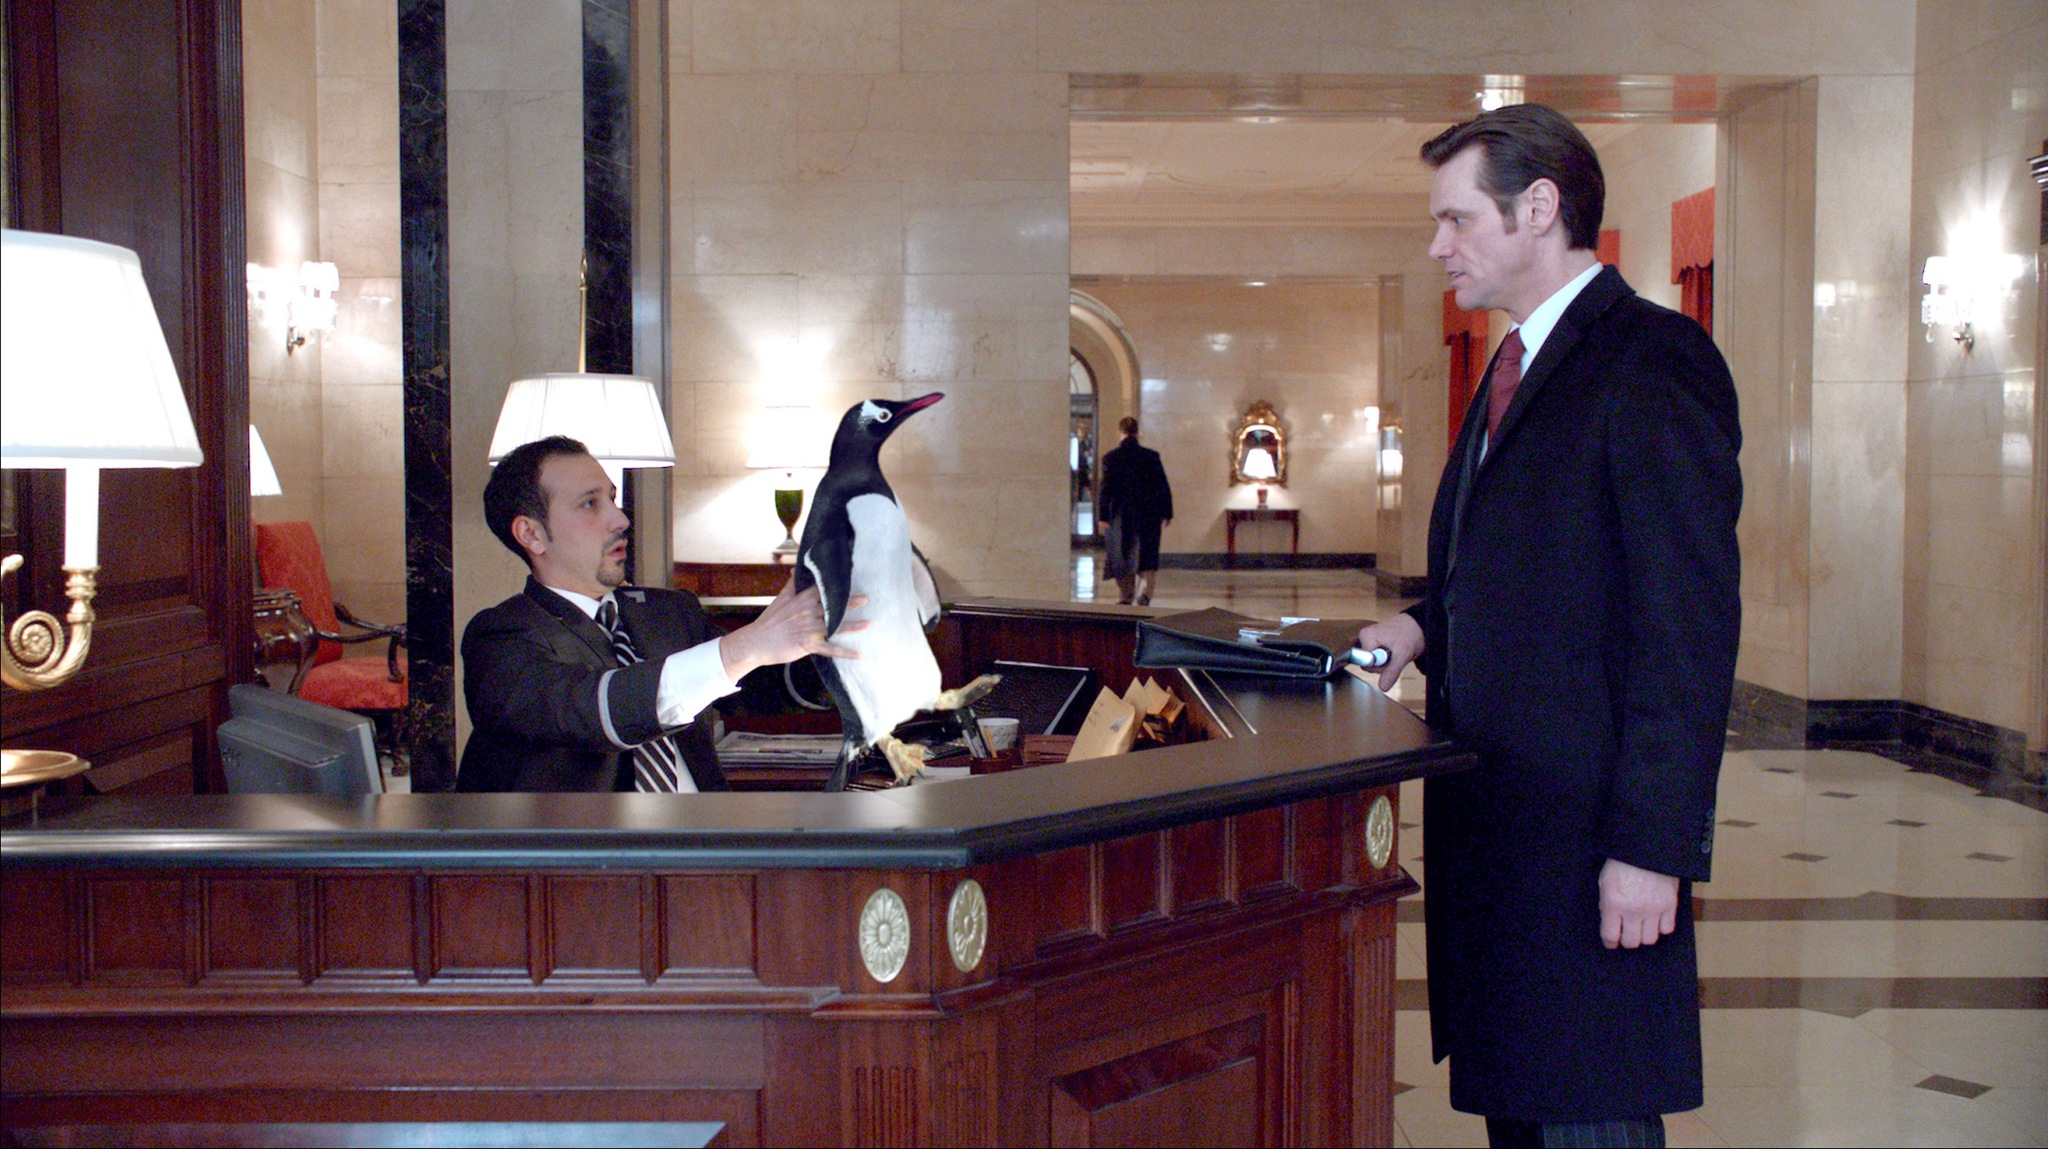 Jim Carrey and Desmin Borges in Mr. Popper's Penguins (2011)